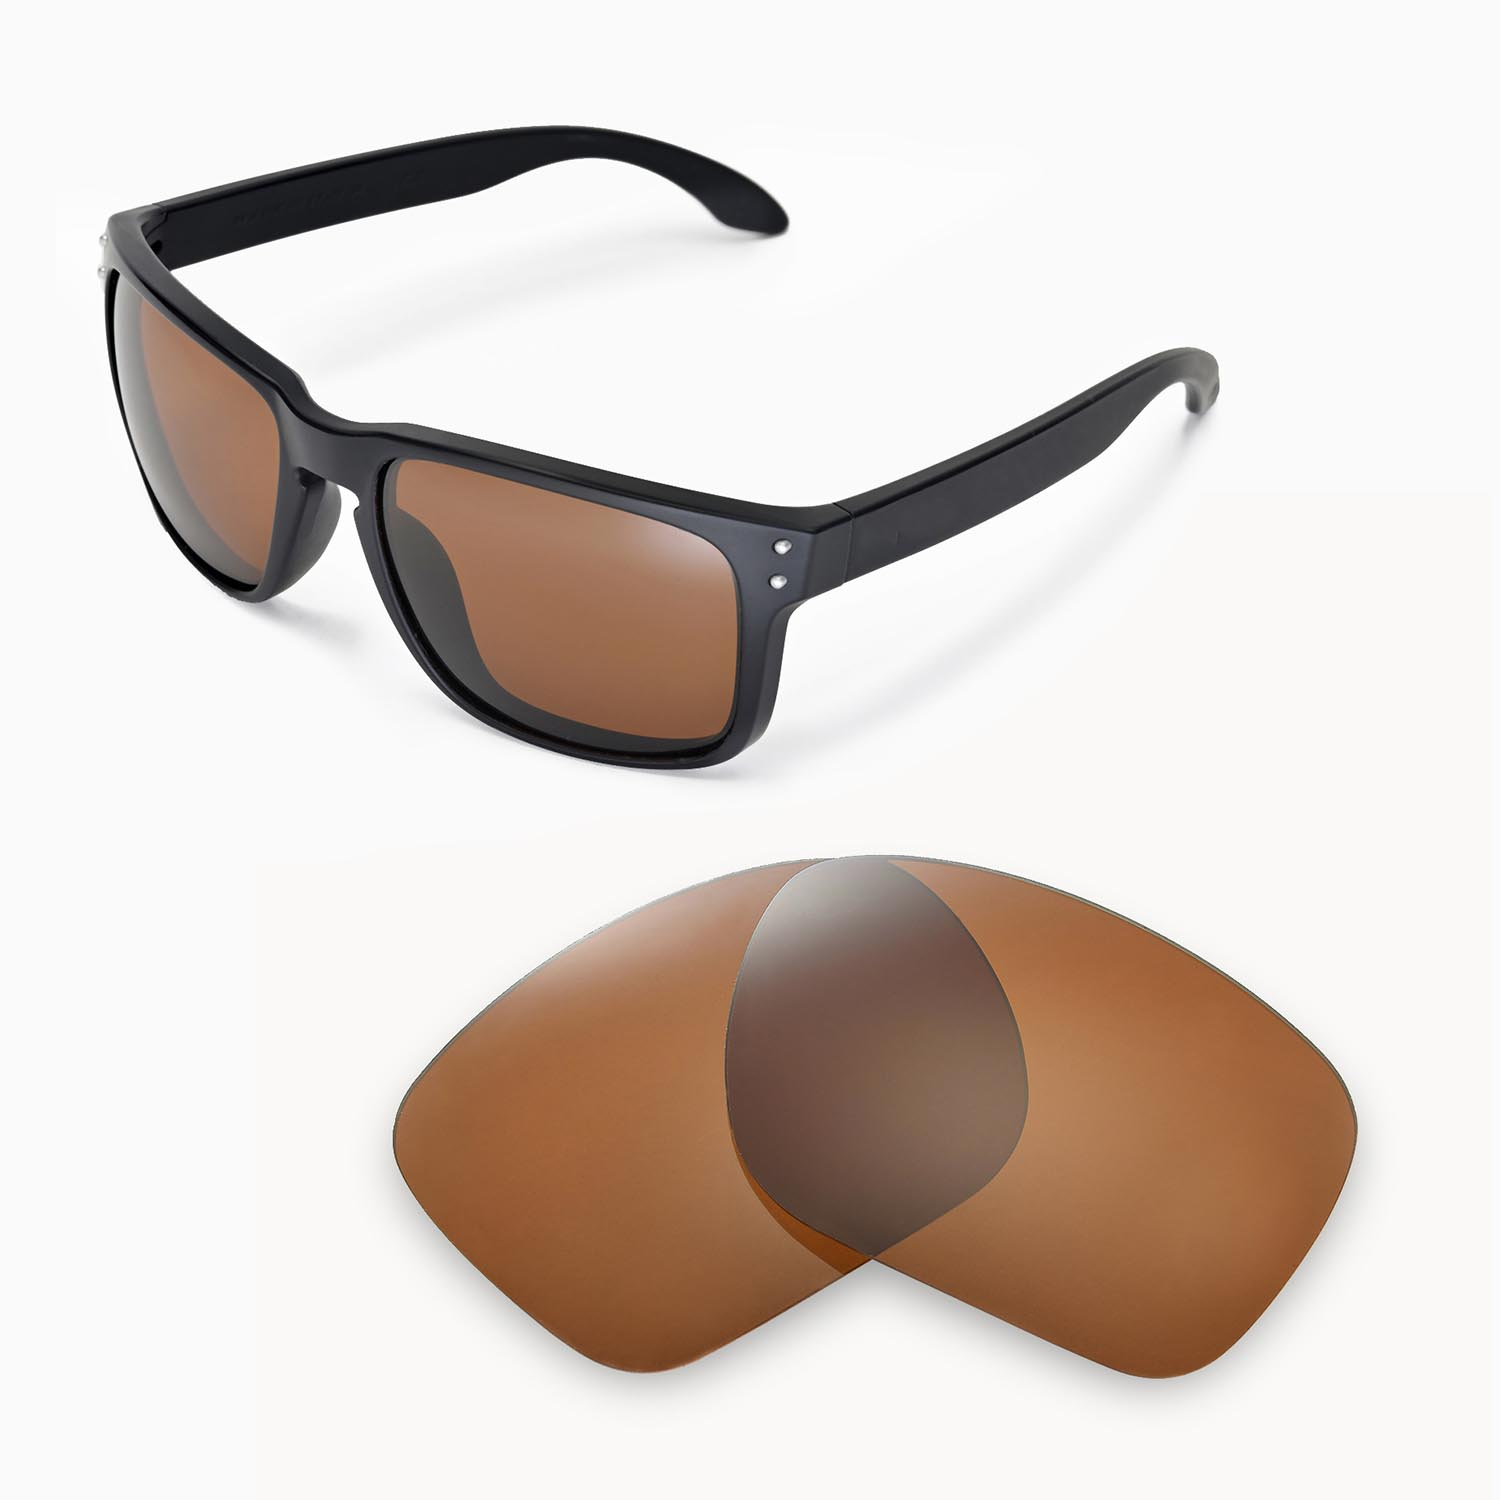 1cffb9854f Details about New Walleva Polarized Brown Replacmeent Lenses For Oakley  Holbrook Sunglasses